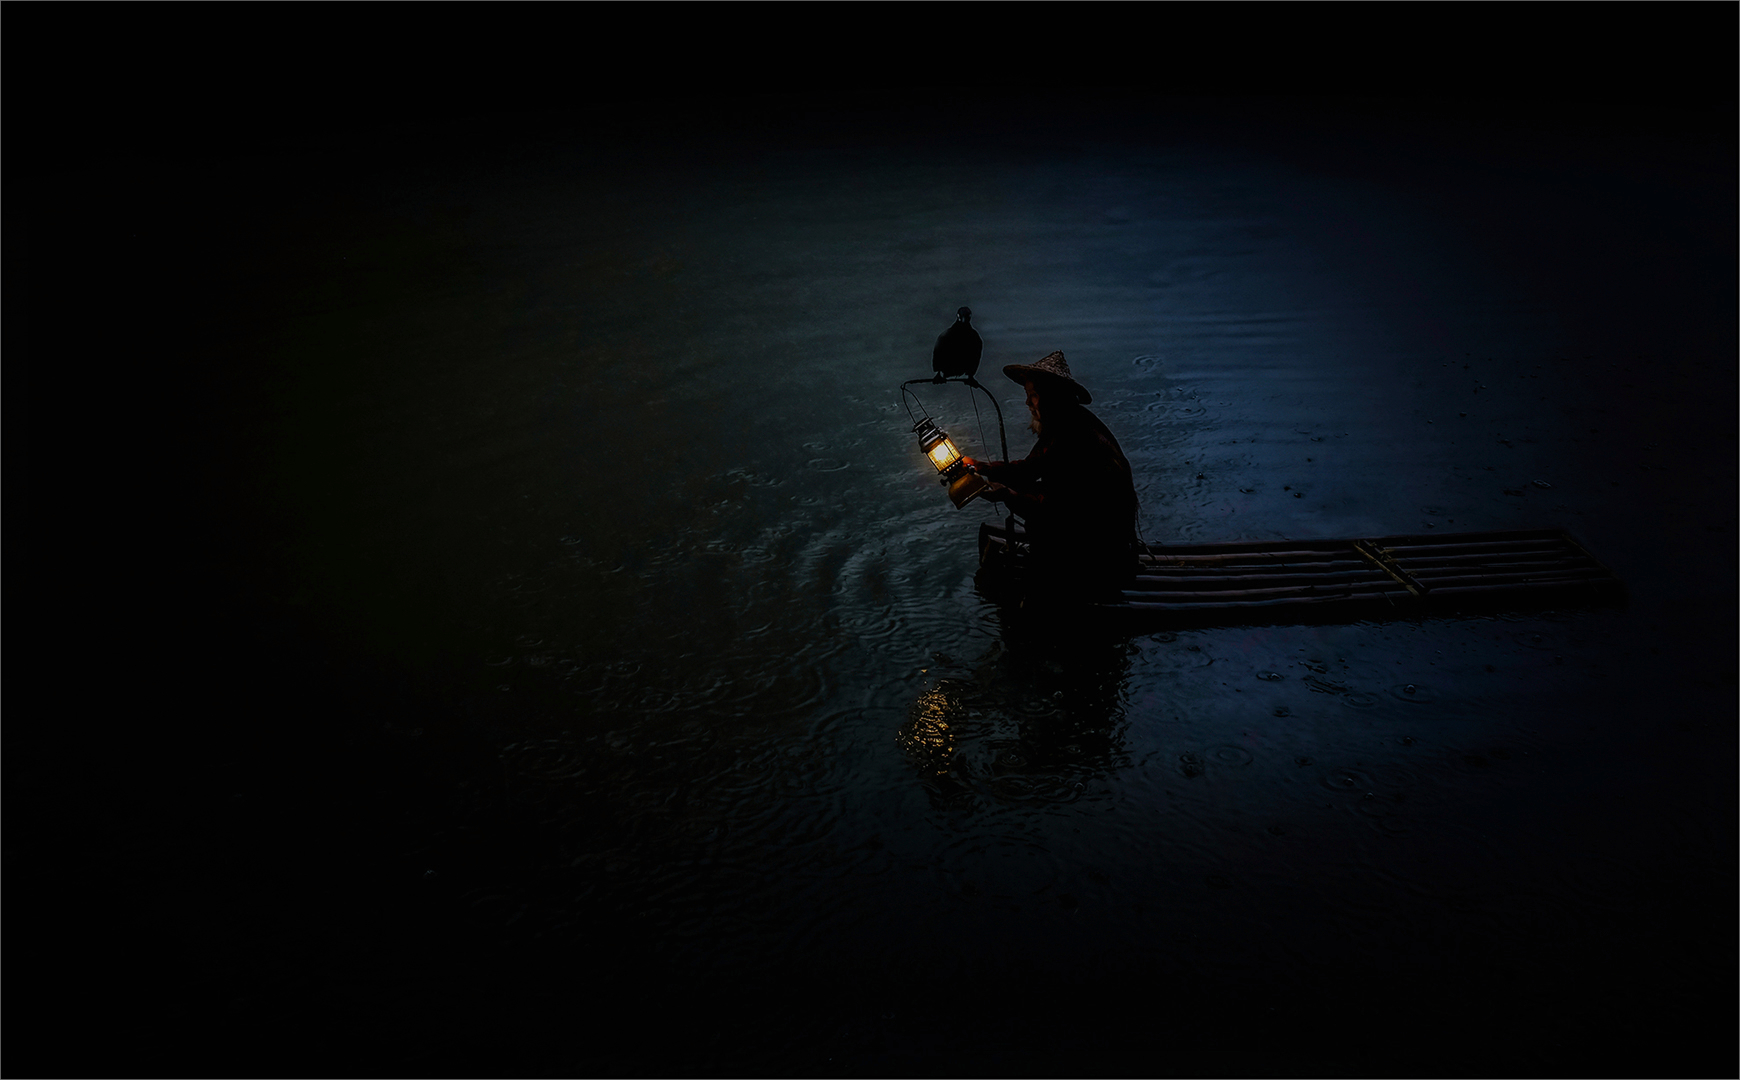 The Lantern and the Fisherman-Anneke Pre